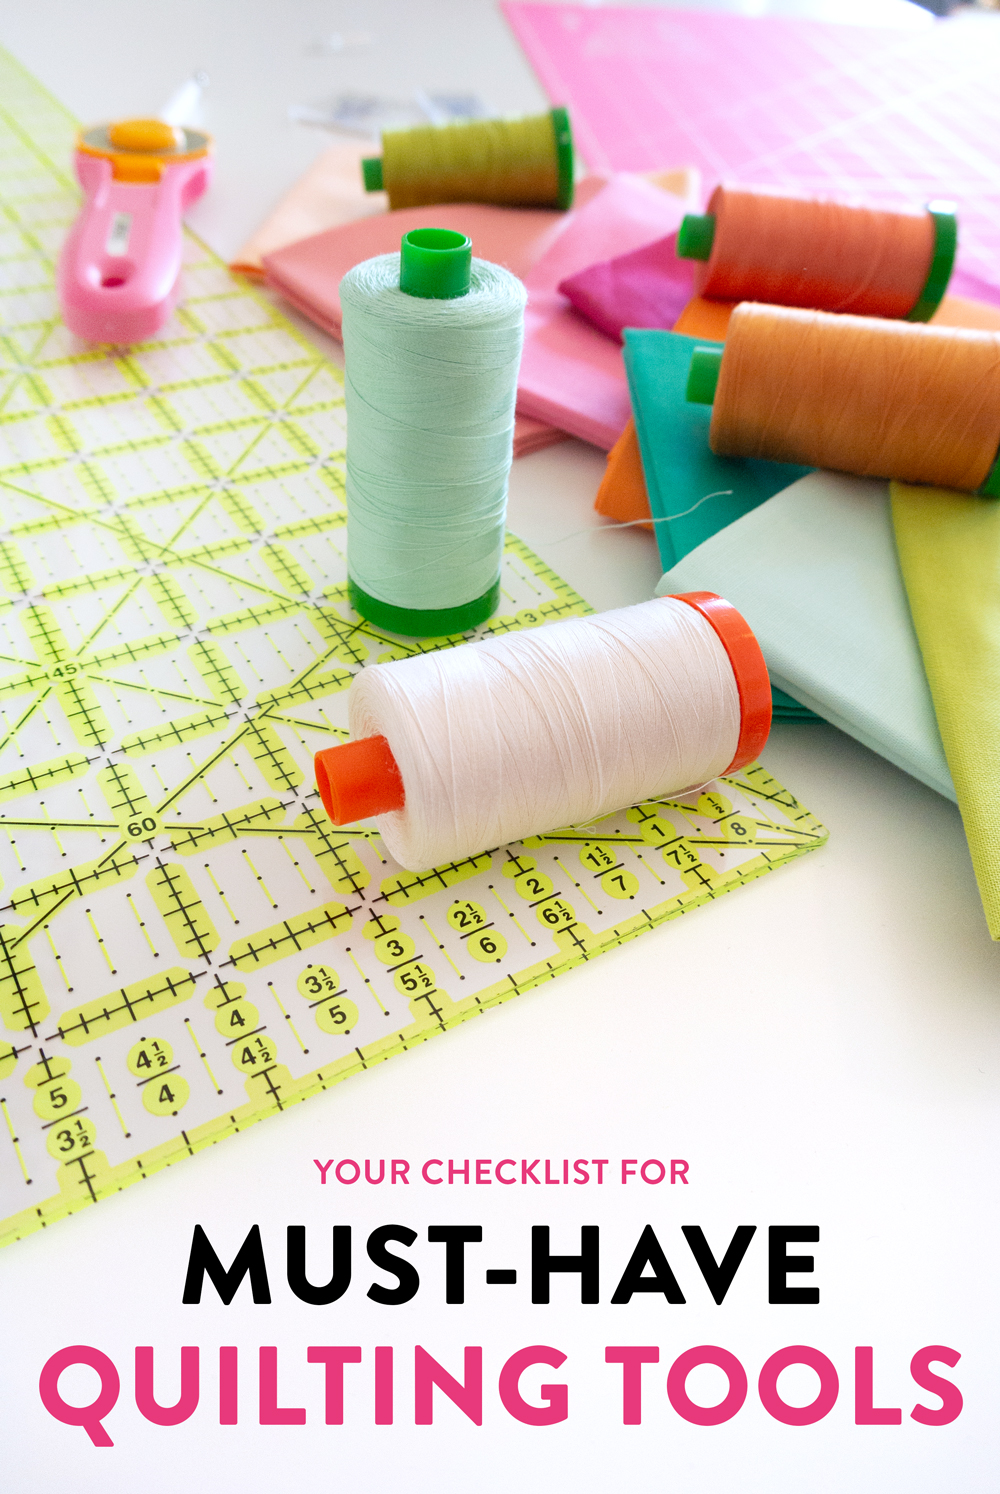 the best checklist for all of your must-have quilting tools